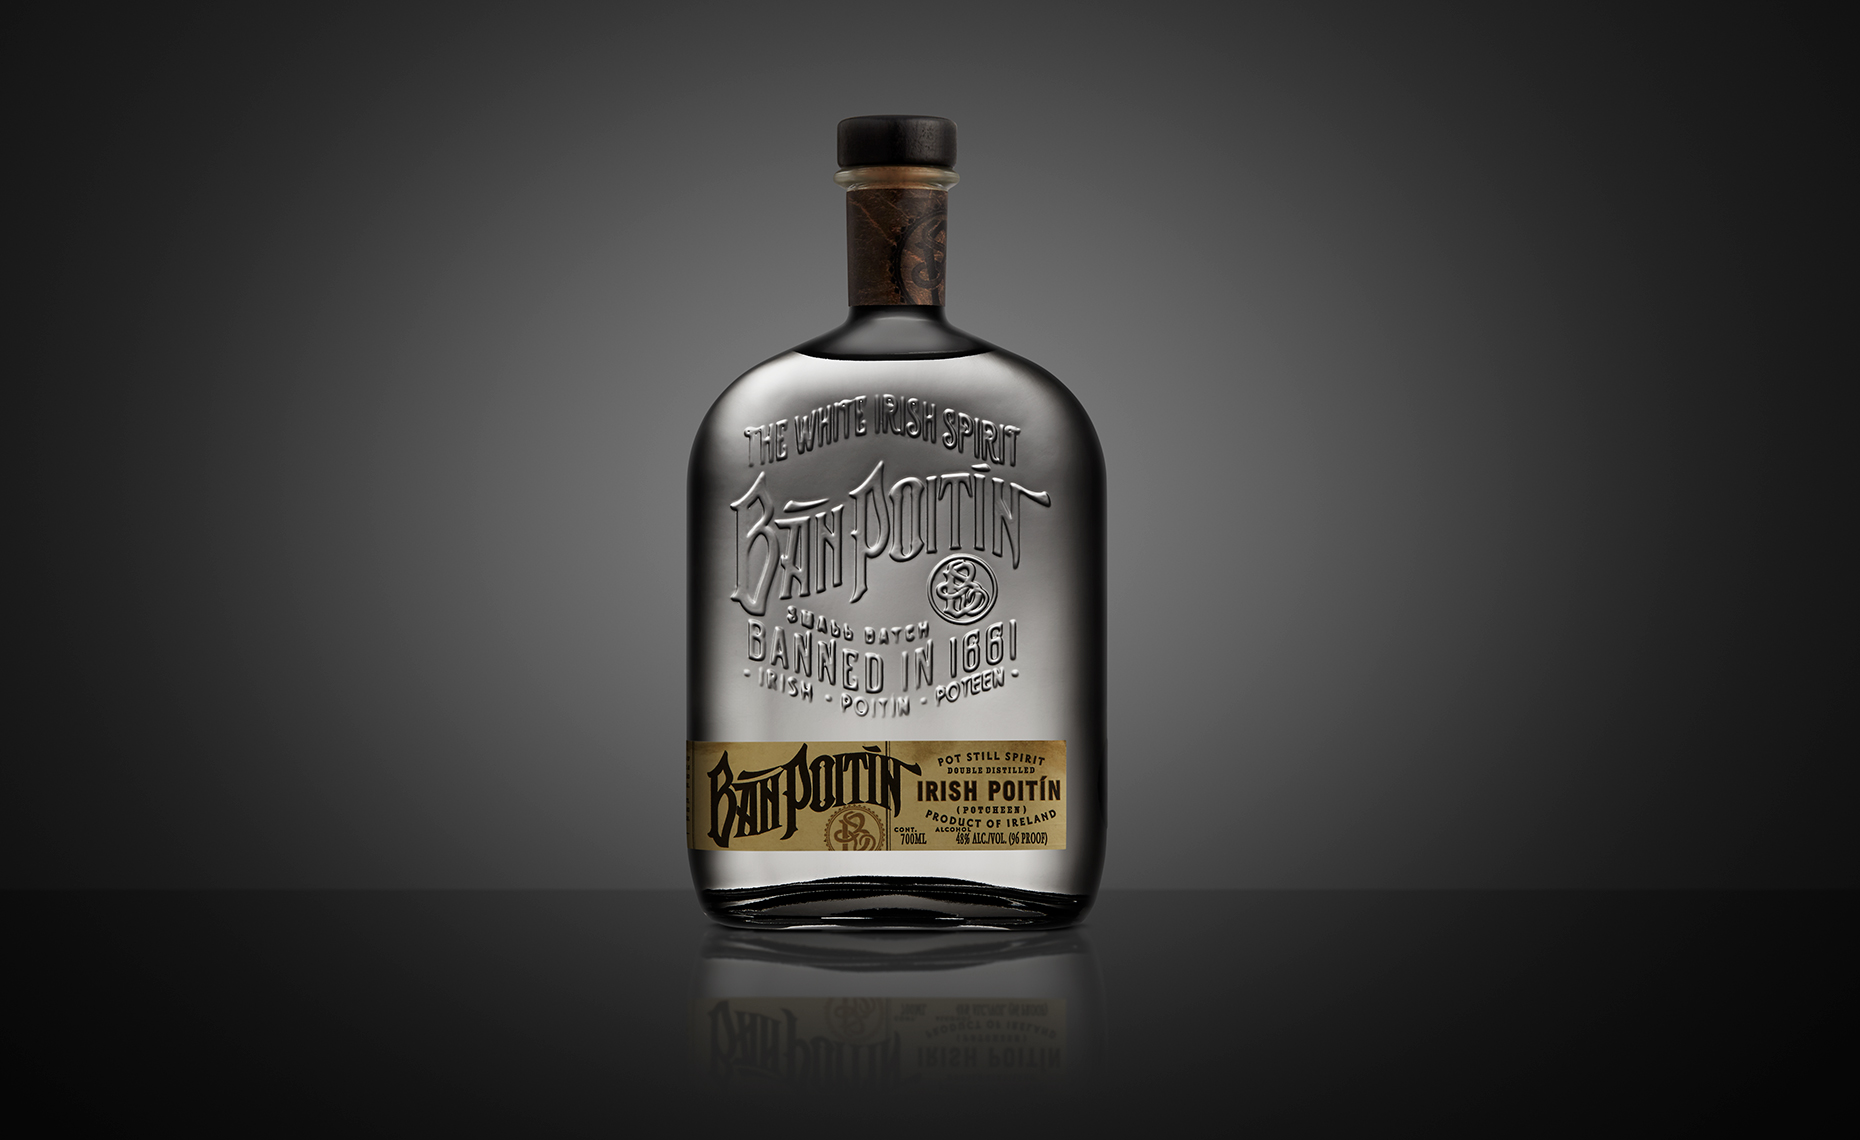 Red Productions Product & Still Life Photography The White Irish Spirit Ban Poitin